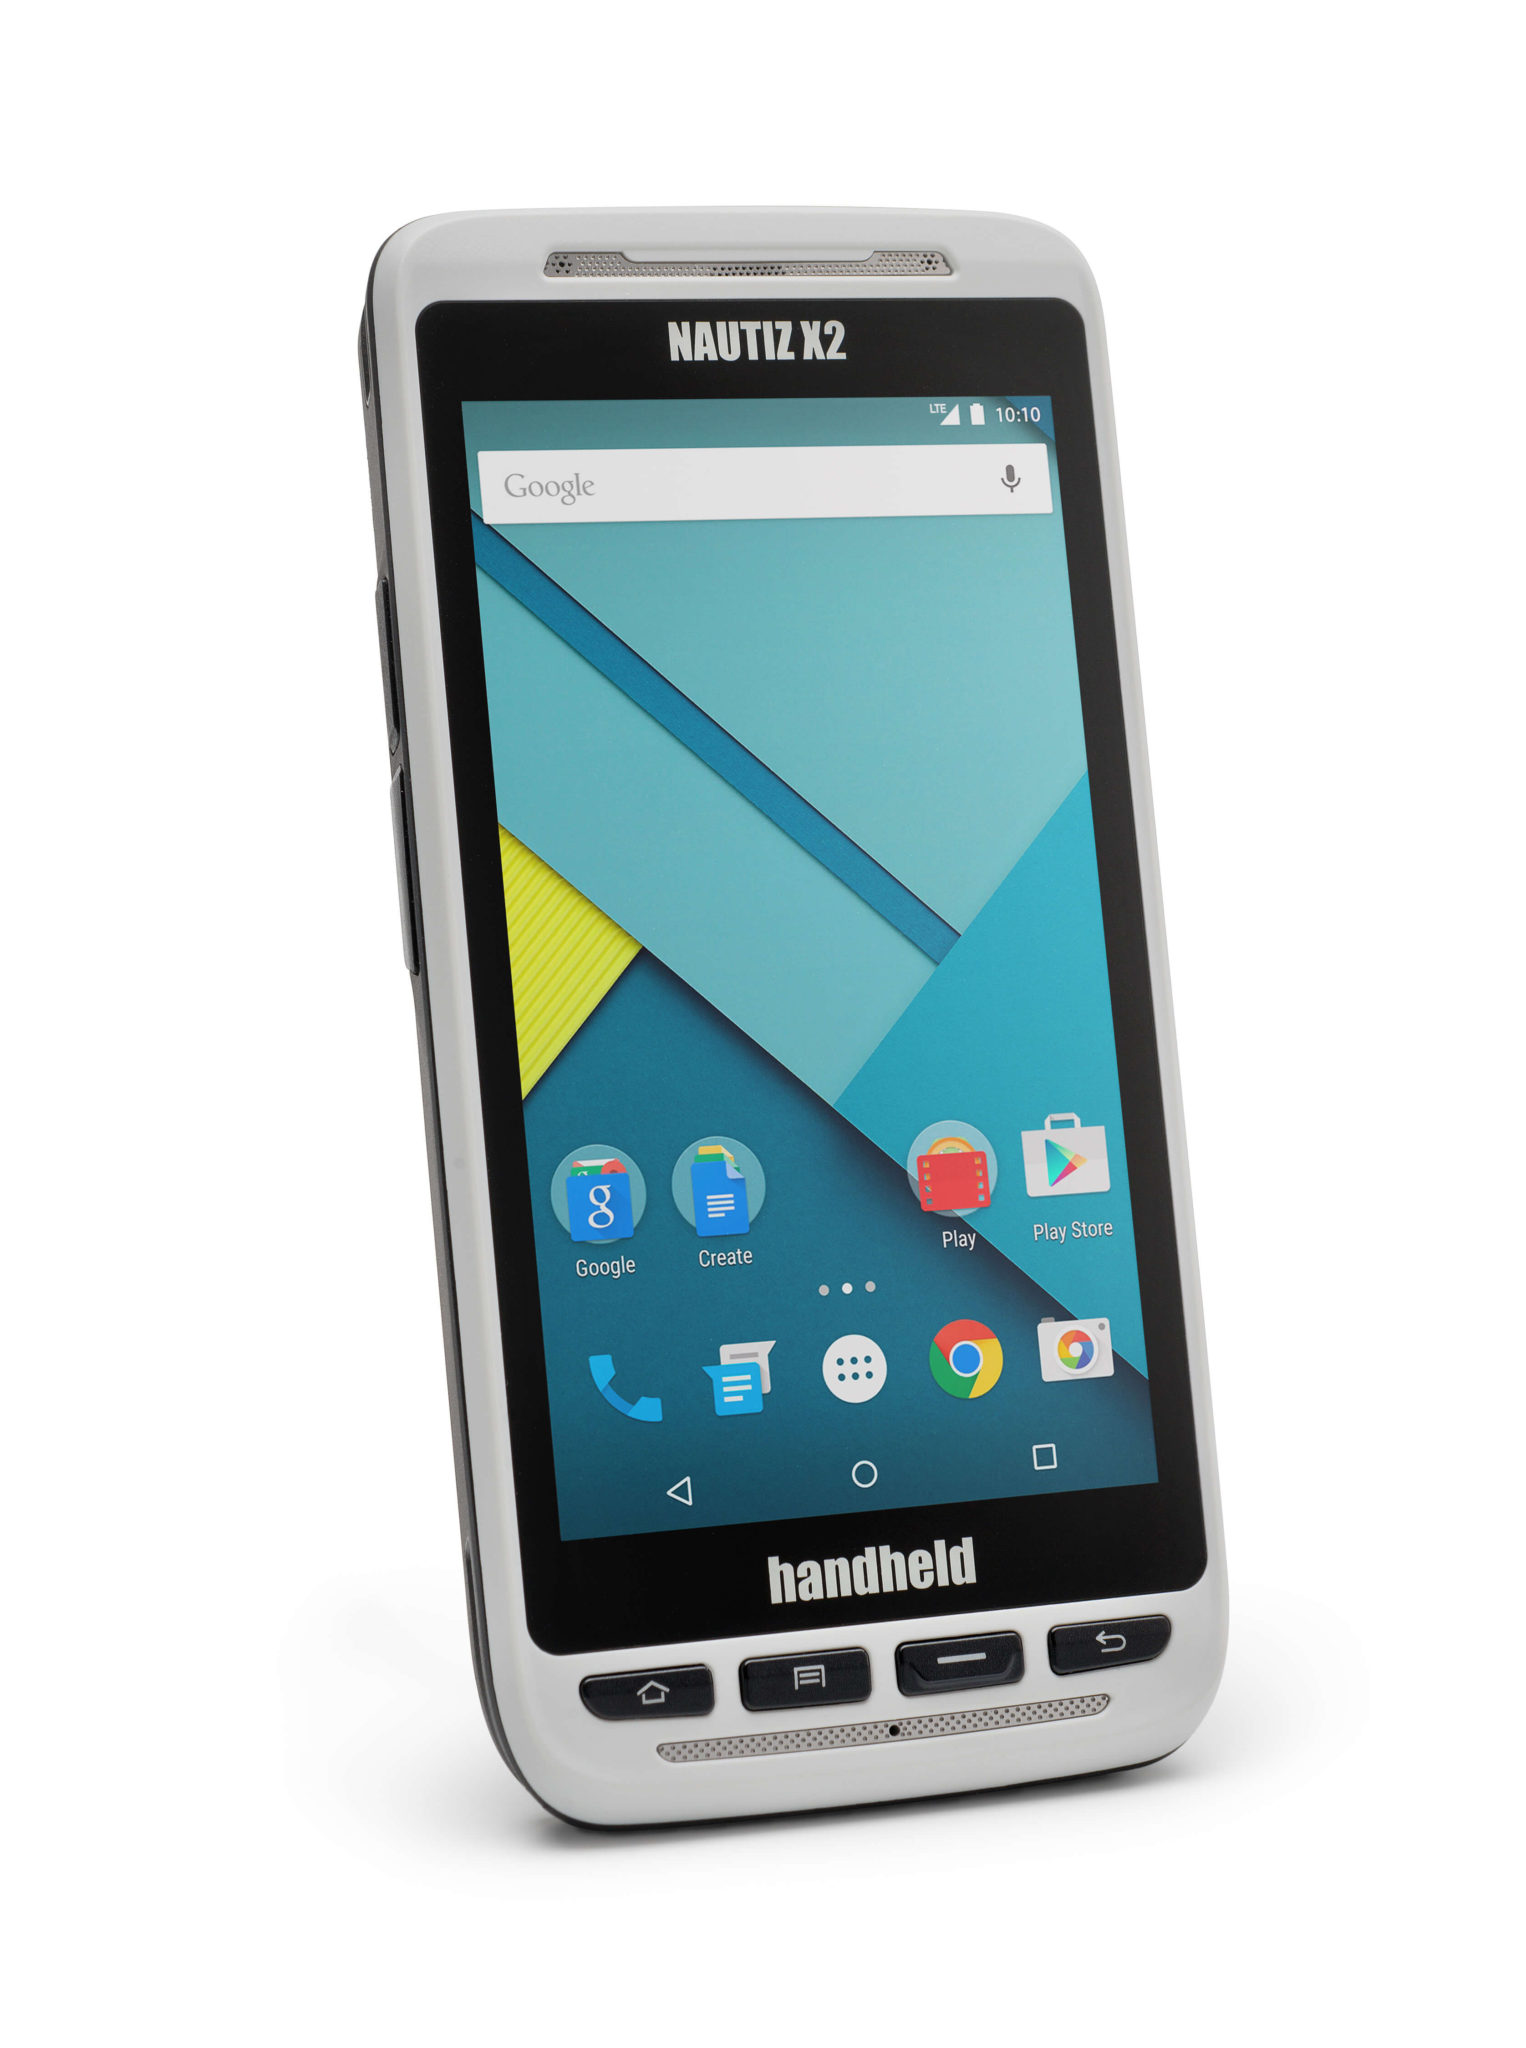 nautiz-x2-handheld-rugged-facing-right